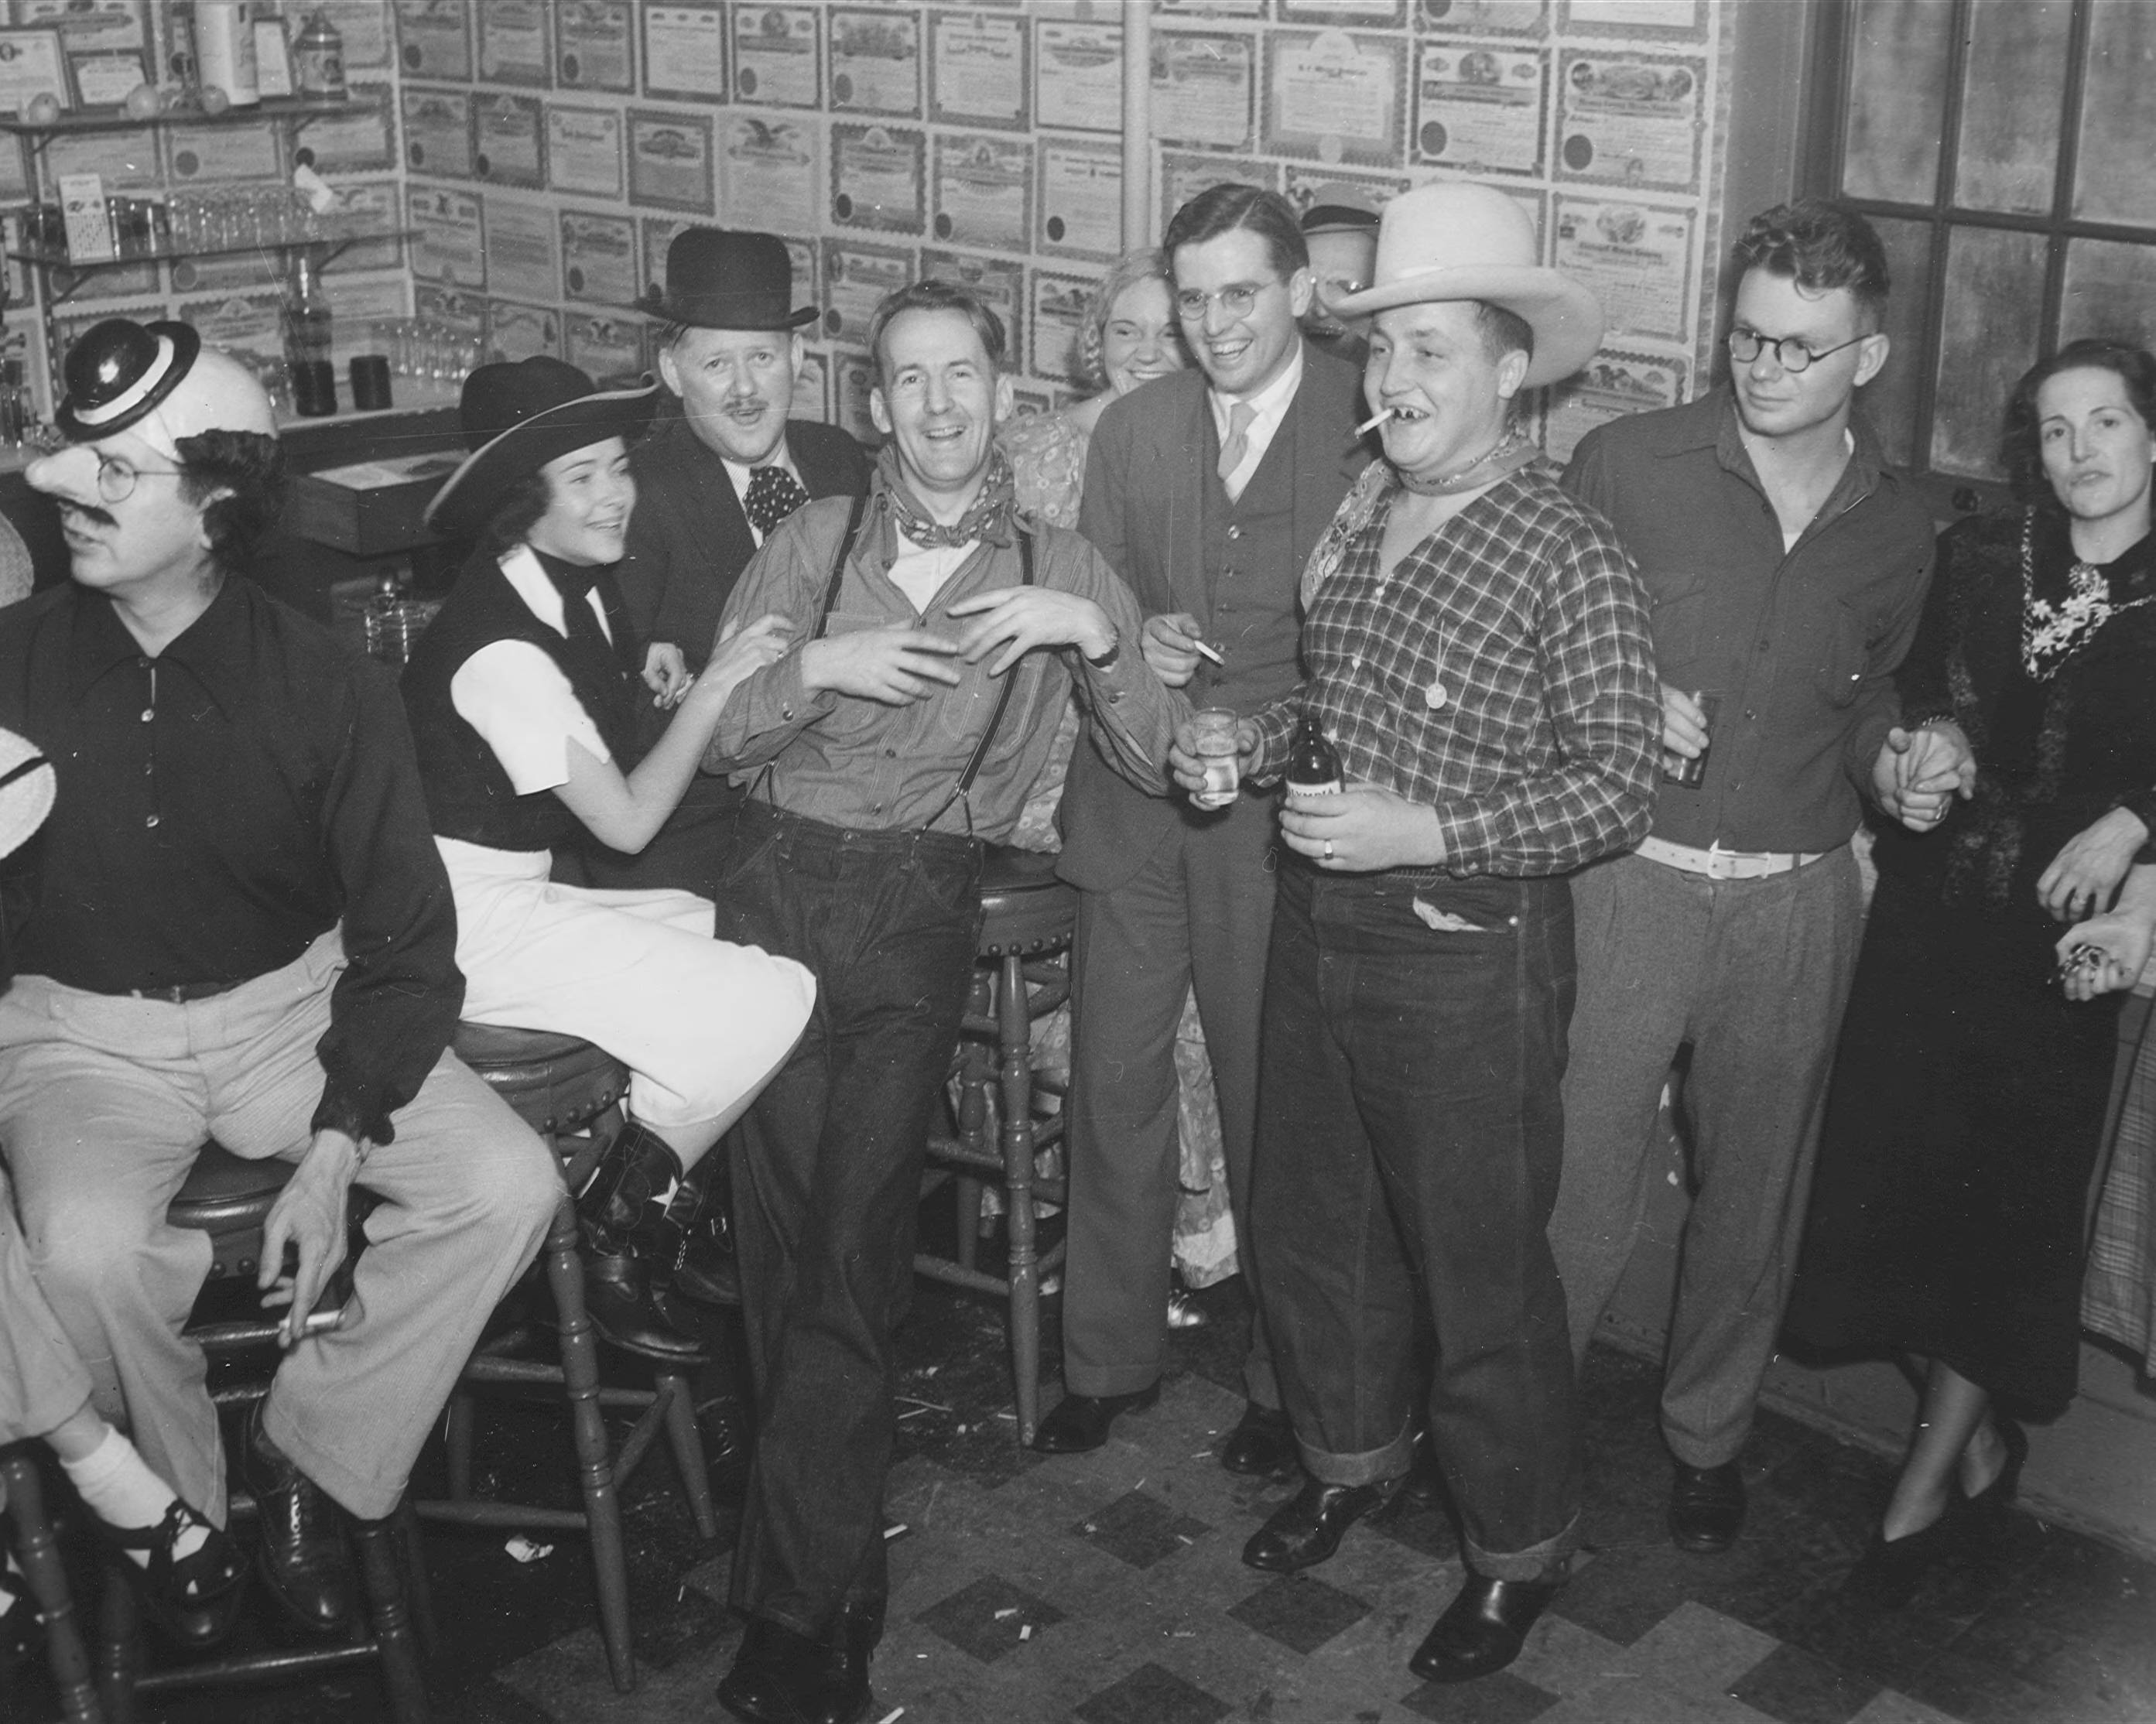 On October 30, 1937, a Halloween barn dance was held at the Tacoma Country & Golf Club. Among the partygoers gathered around the bar were Caroll Carstens (second from left), Ed Griffin (fourth man from left), Tom Carstens (in cowboy hat), and Bud Doherty (second from right). The walls of the bar are papered with stock certificates. This decorating idea was the brainchild of Club president Harry K. Todd. The walls are papered with about 8 million dollars worth of stock certificates from businesses and ventures that did not work out. (T.Times, 11-30-1937, Society, p. 11).